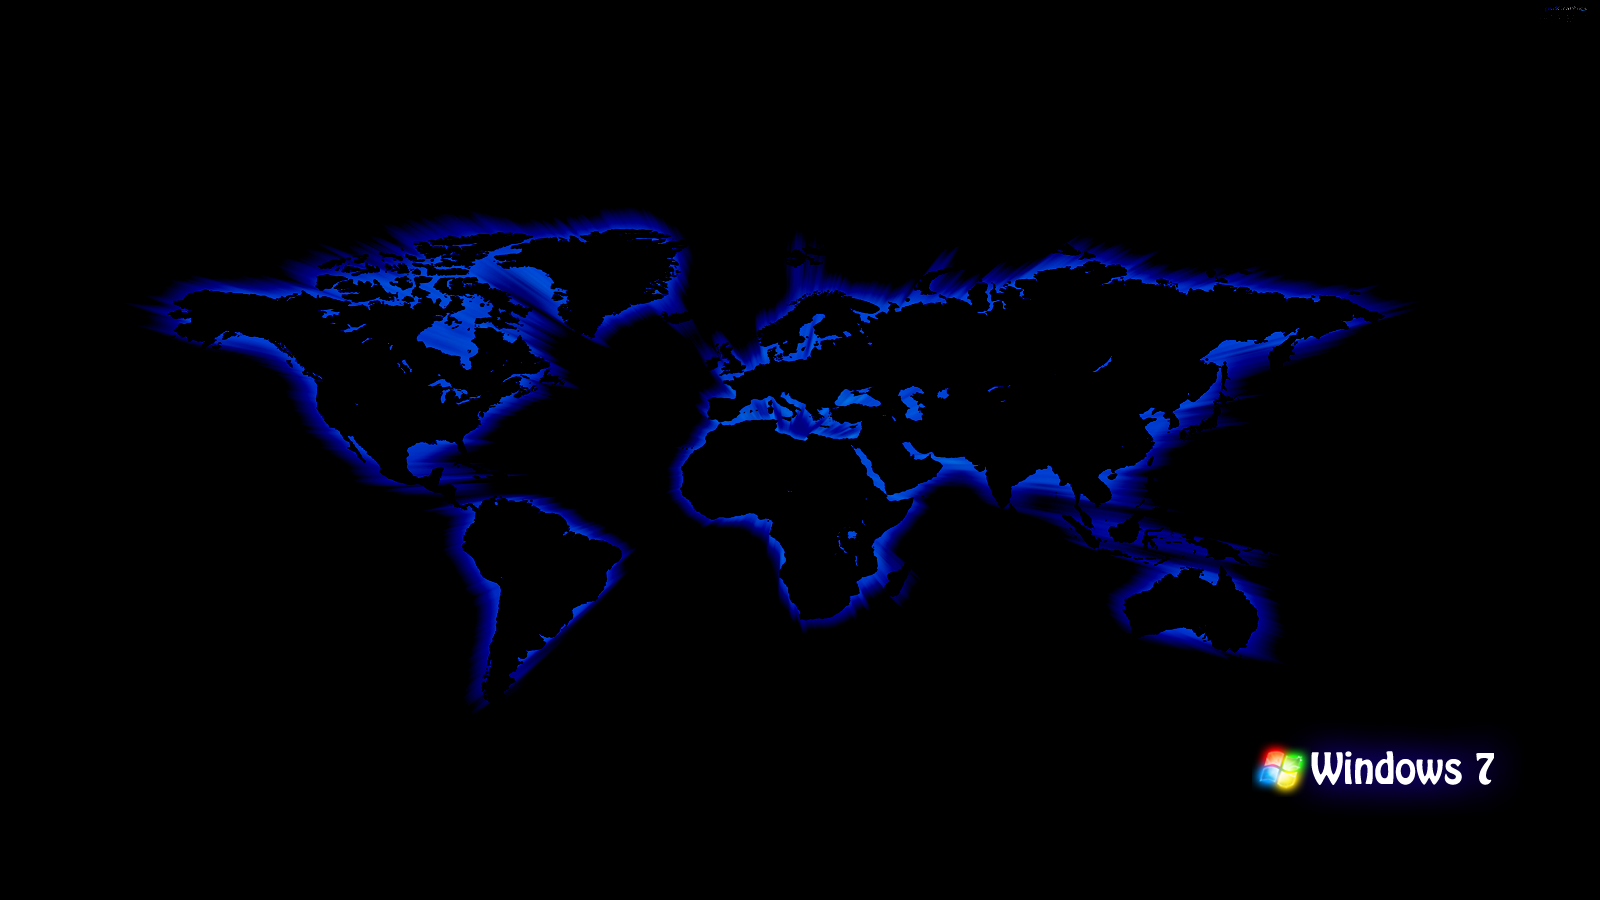 Blue world map by blackboy993 on deviantart blue world map by blackboy993 blue world map by blackboy993 gumiabroncs Choice Image